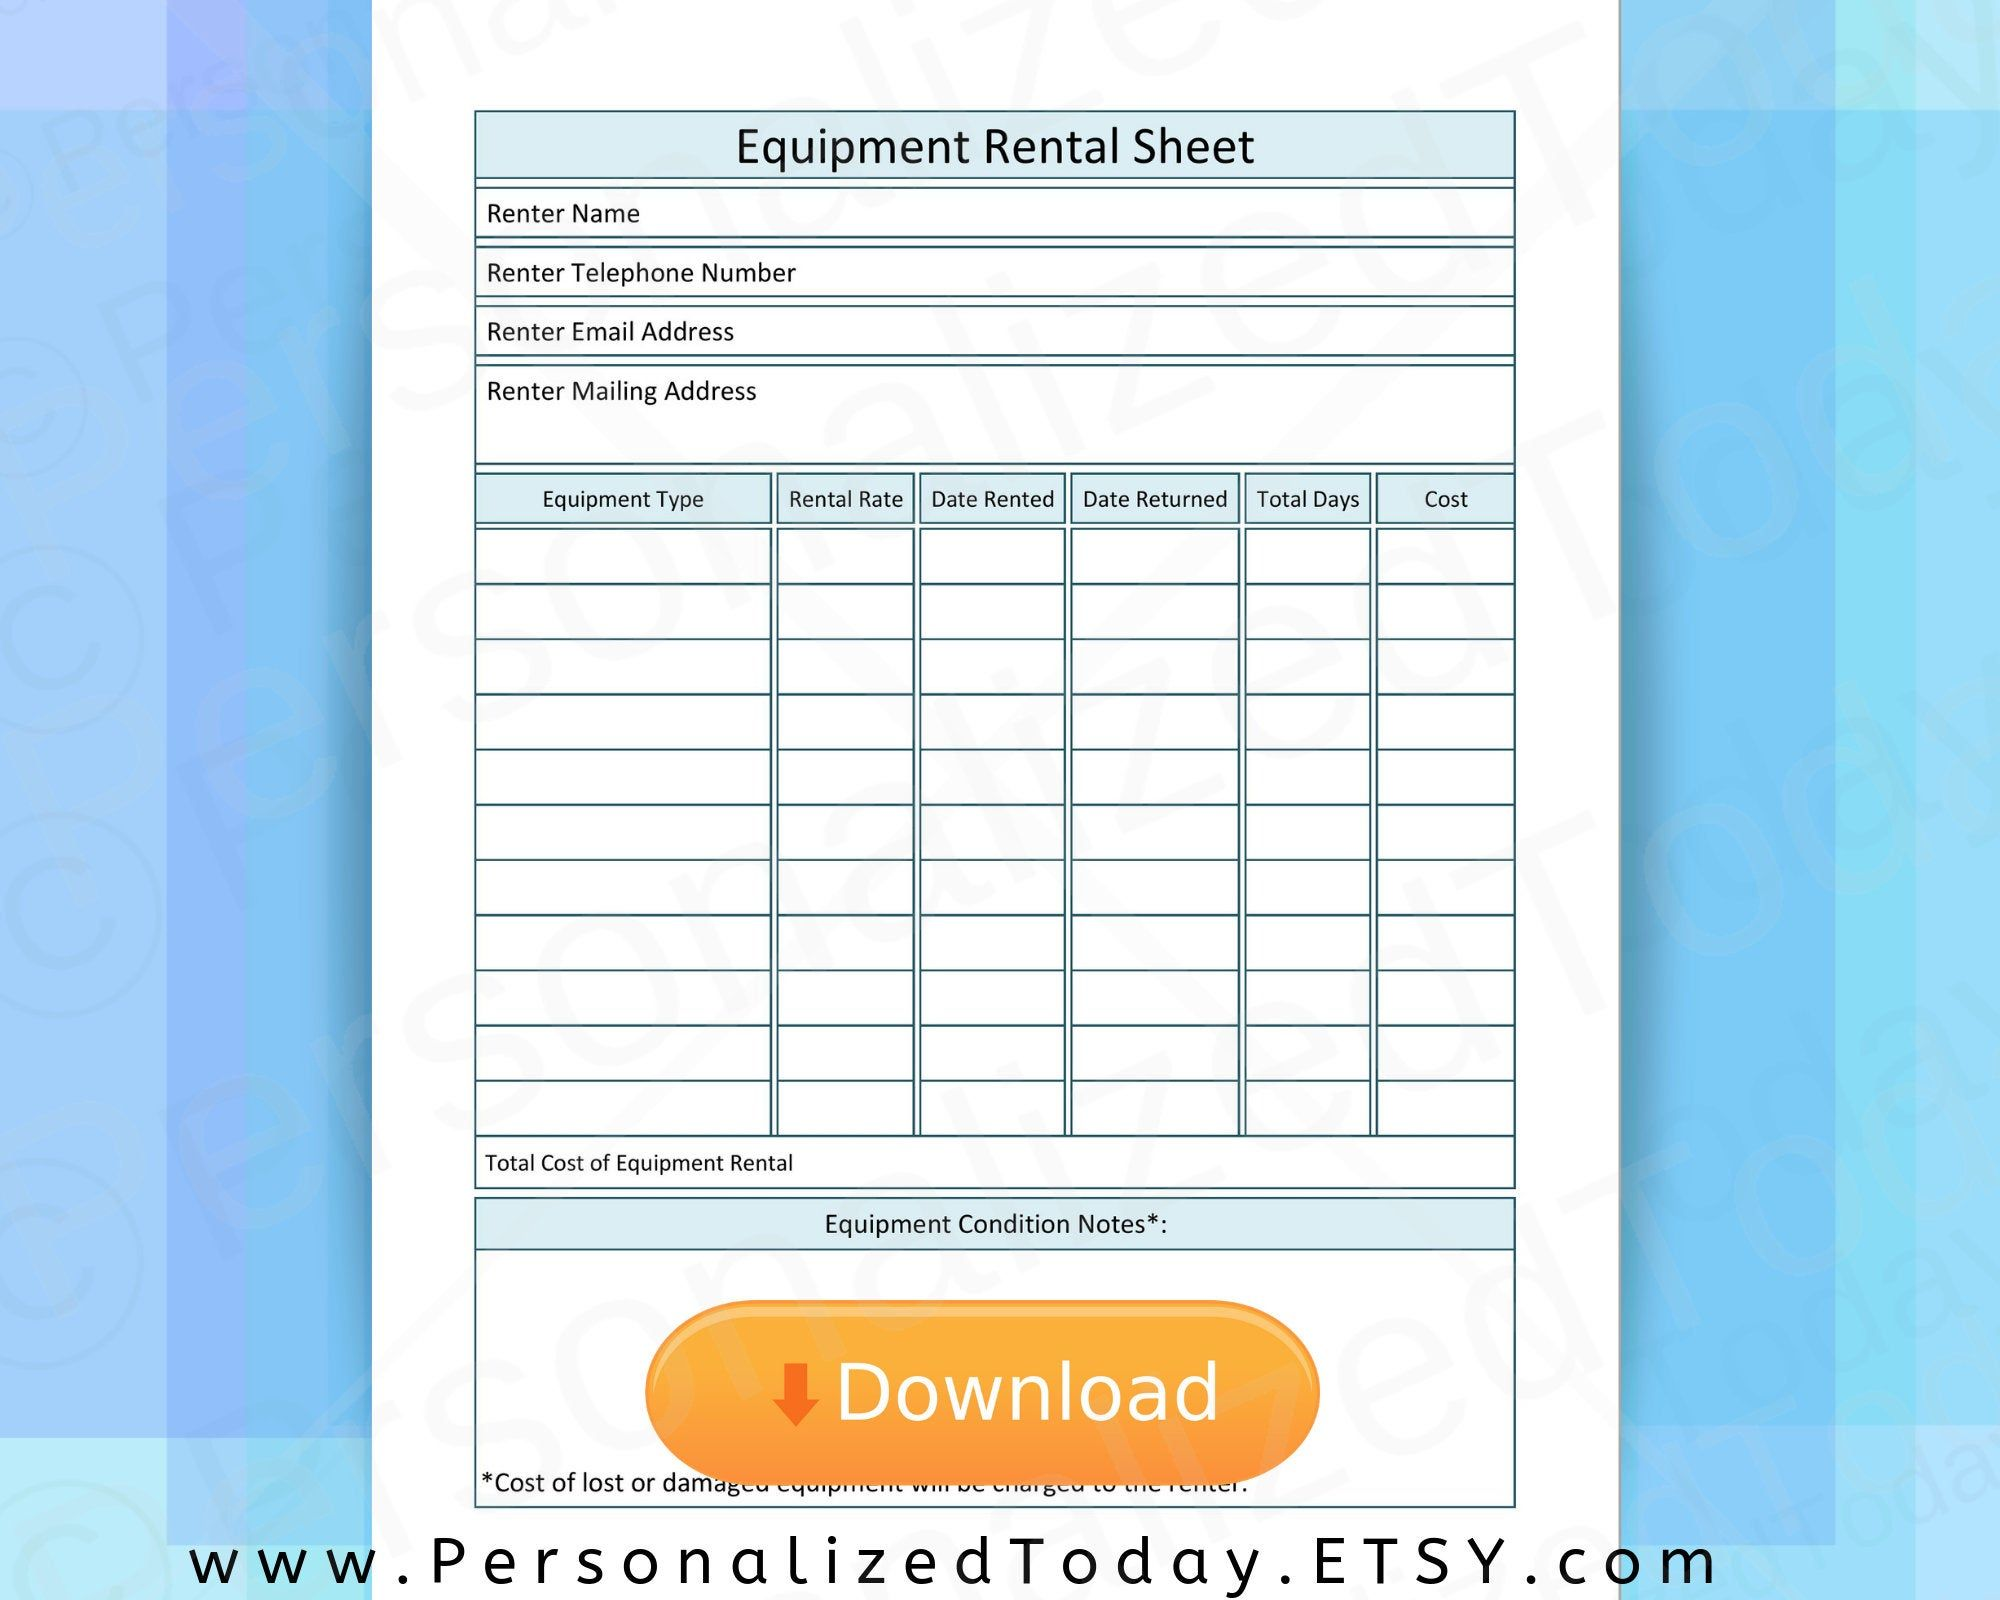 Equipment Rental Sheet Printable PDF Rate and Condition